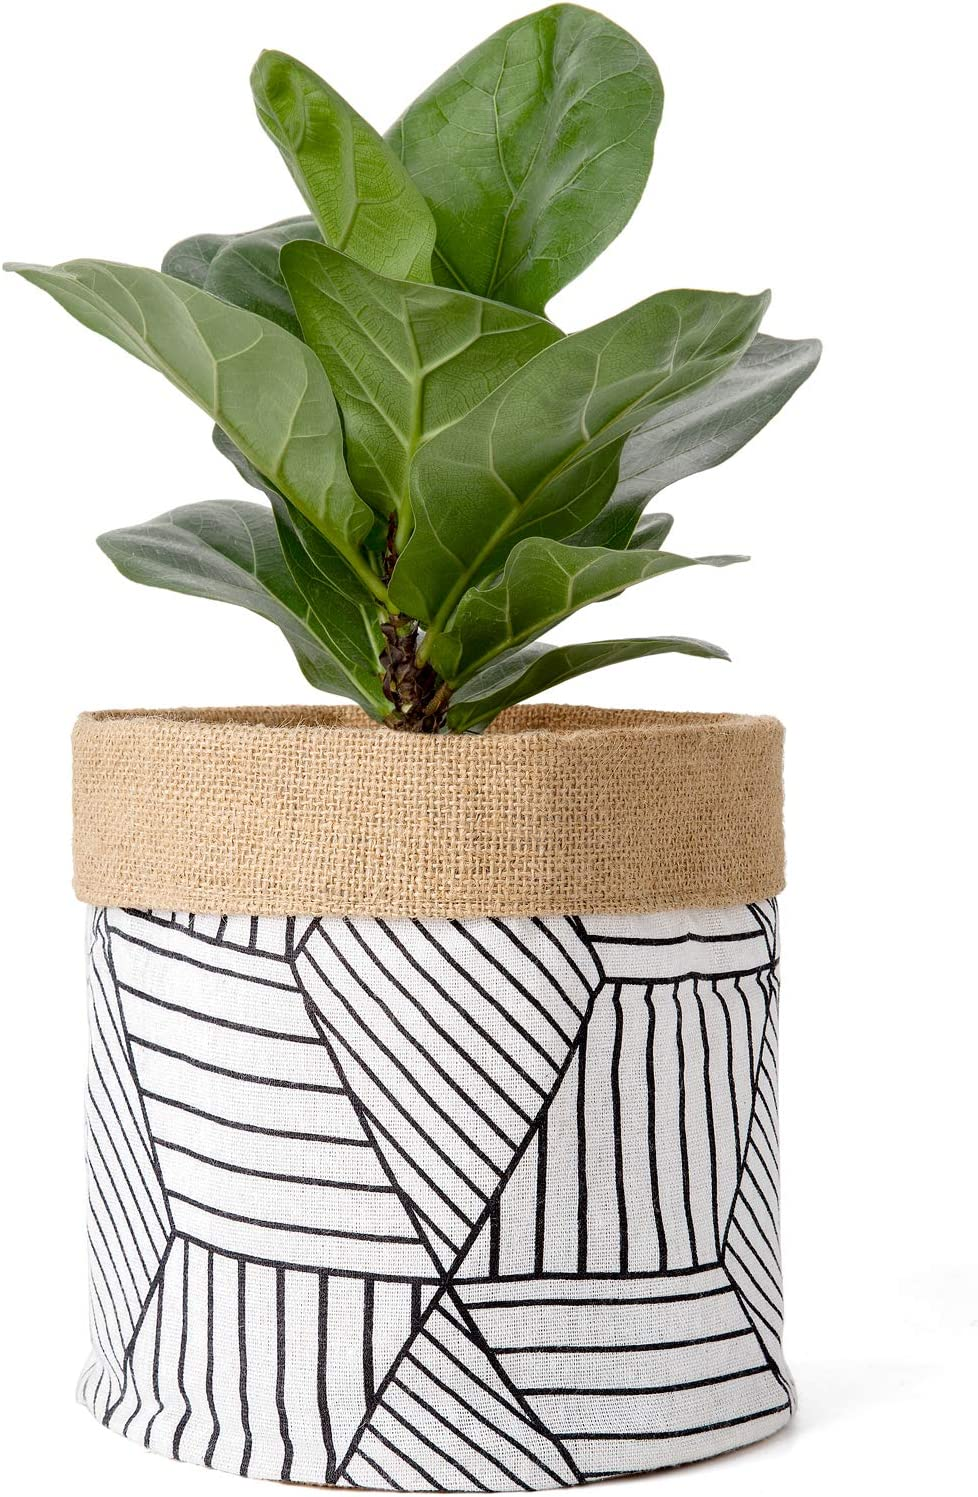 Mkono Plant Basket Cotton Linen Modern Table Desktop Indoor Planter Up to 10 Inch Pot Double-Faced Flower Pot Cover with Jute Lining for Storage Organizer Home Decor, 8 x 7.5